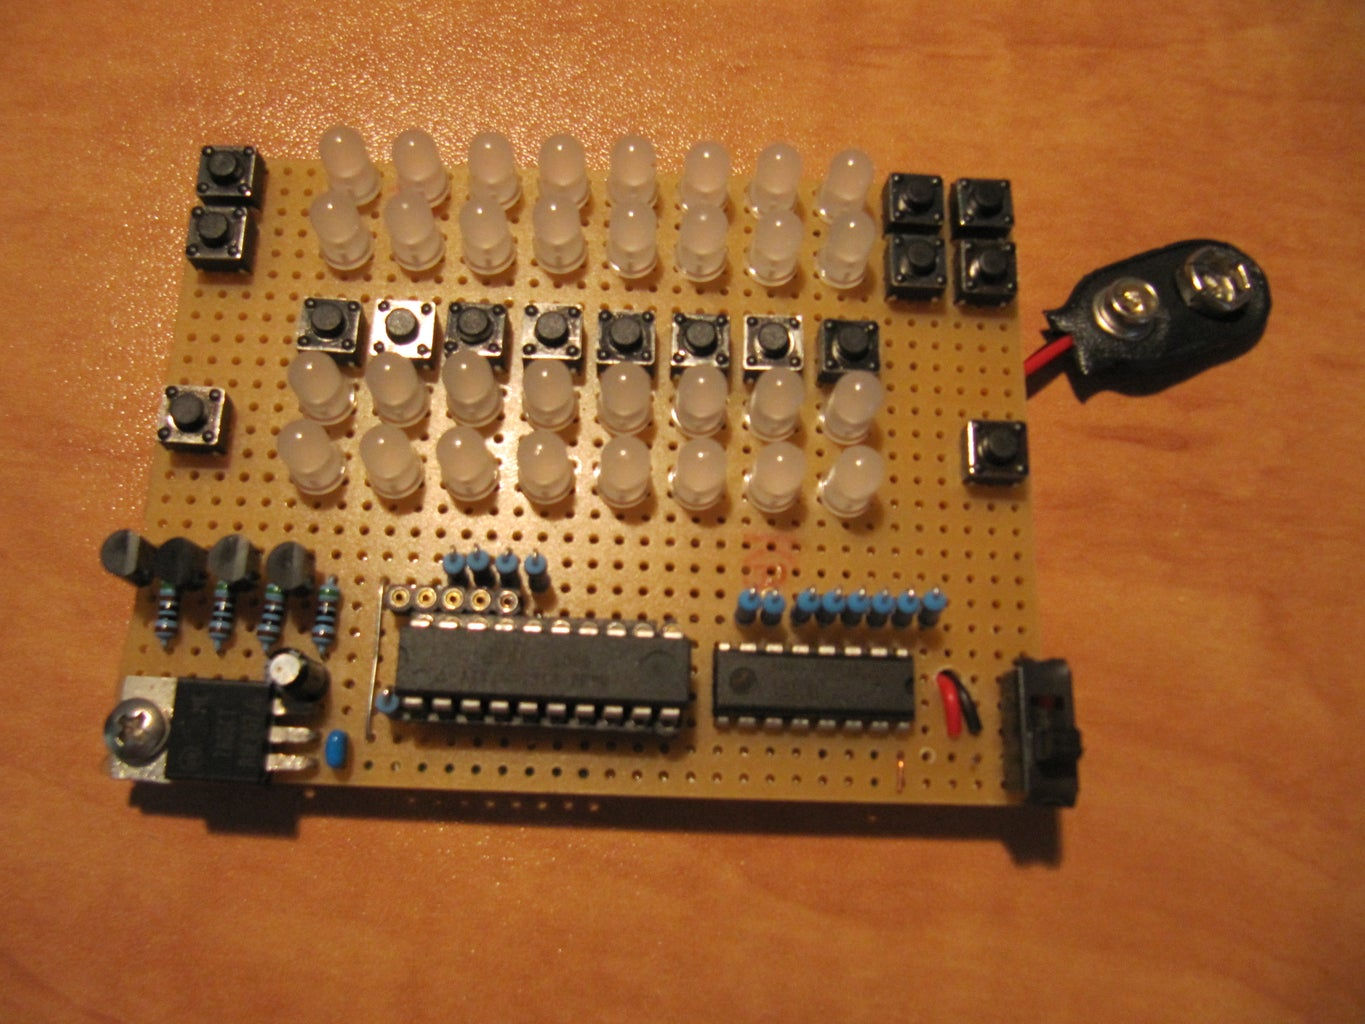 How to Control 16 Inputs and 32 Outouts?